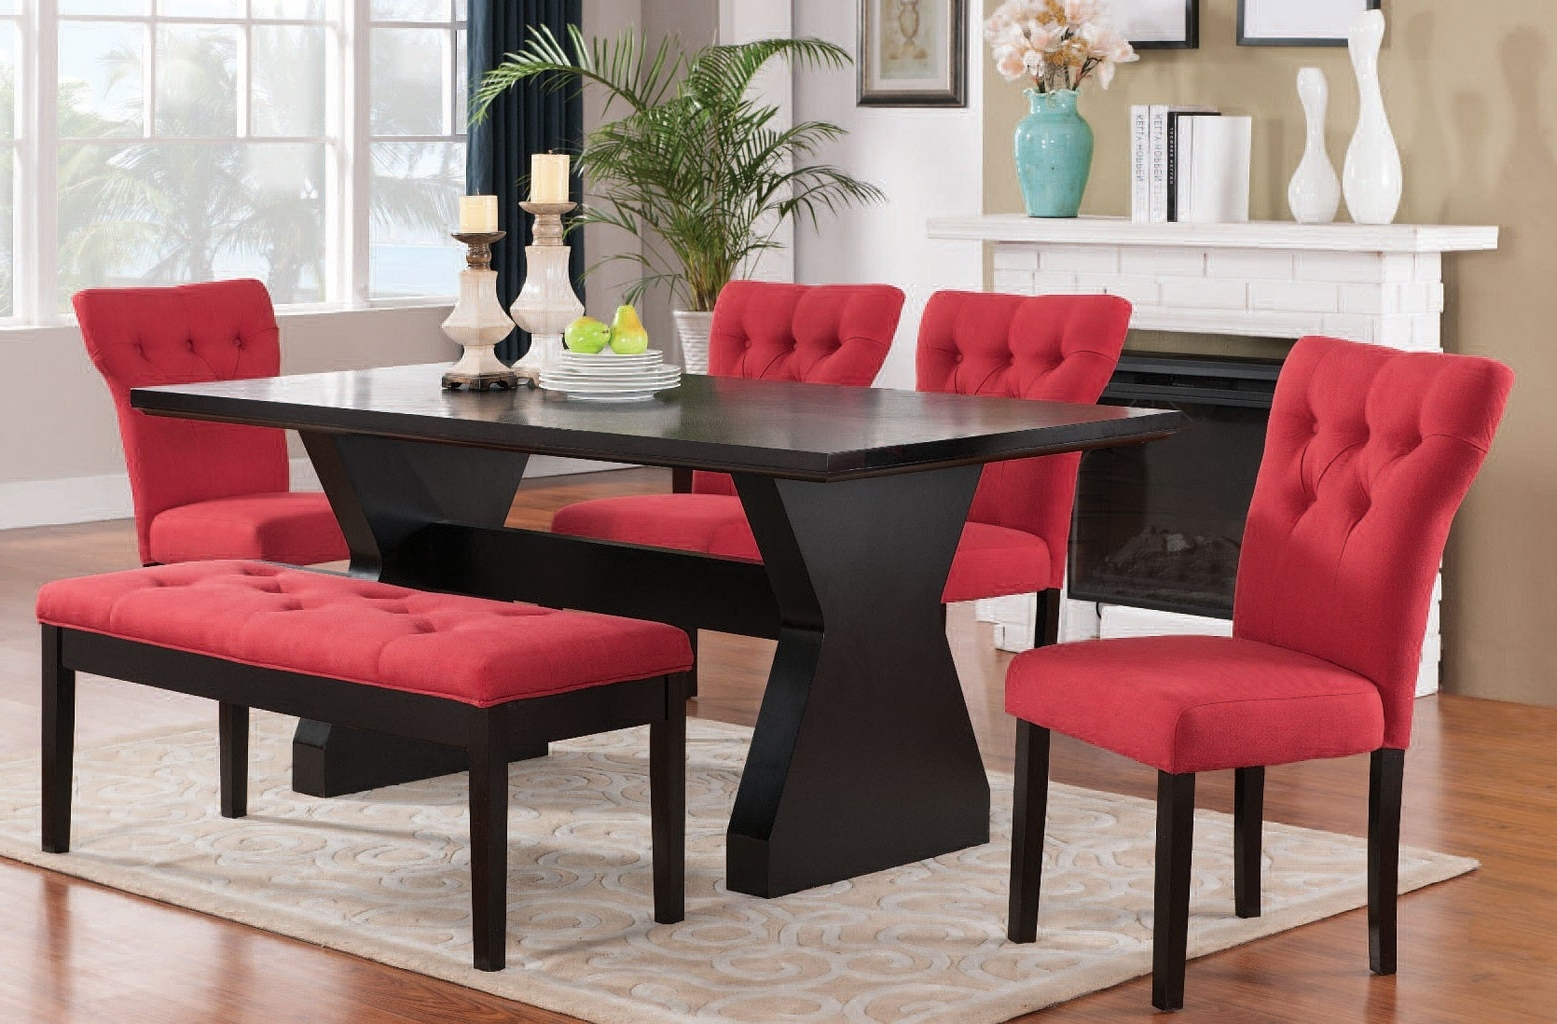 Red Dining Chairs For Your Dining Rooms – Home Decor Ideas With Fashionable Red Dining Chairs (View 19 of 25)